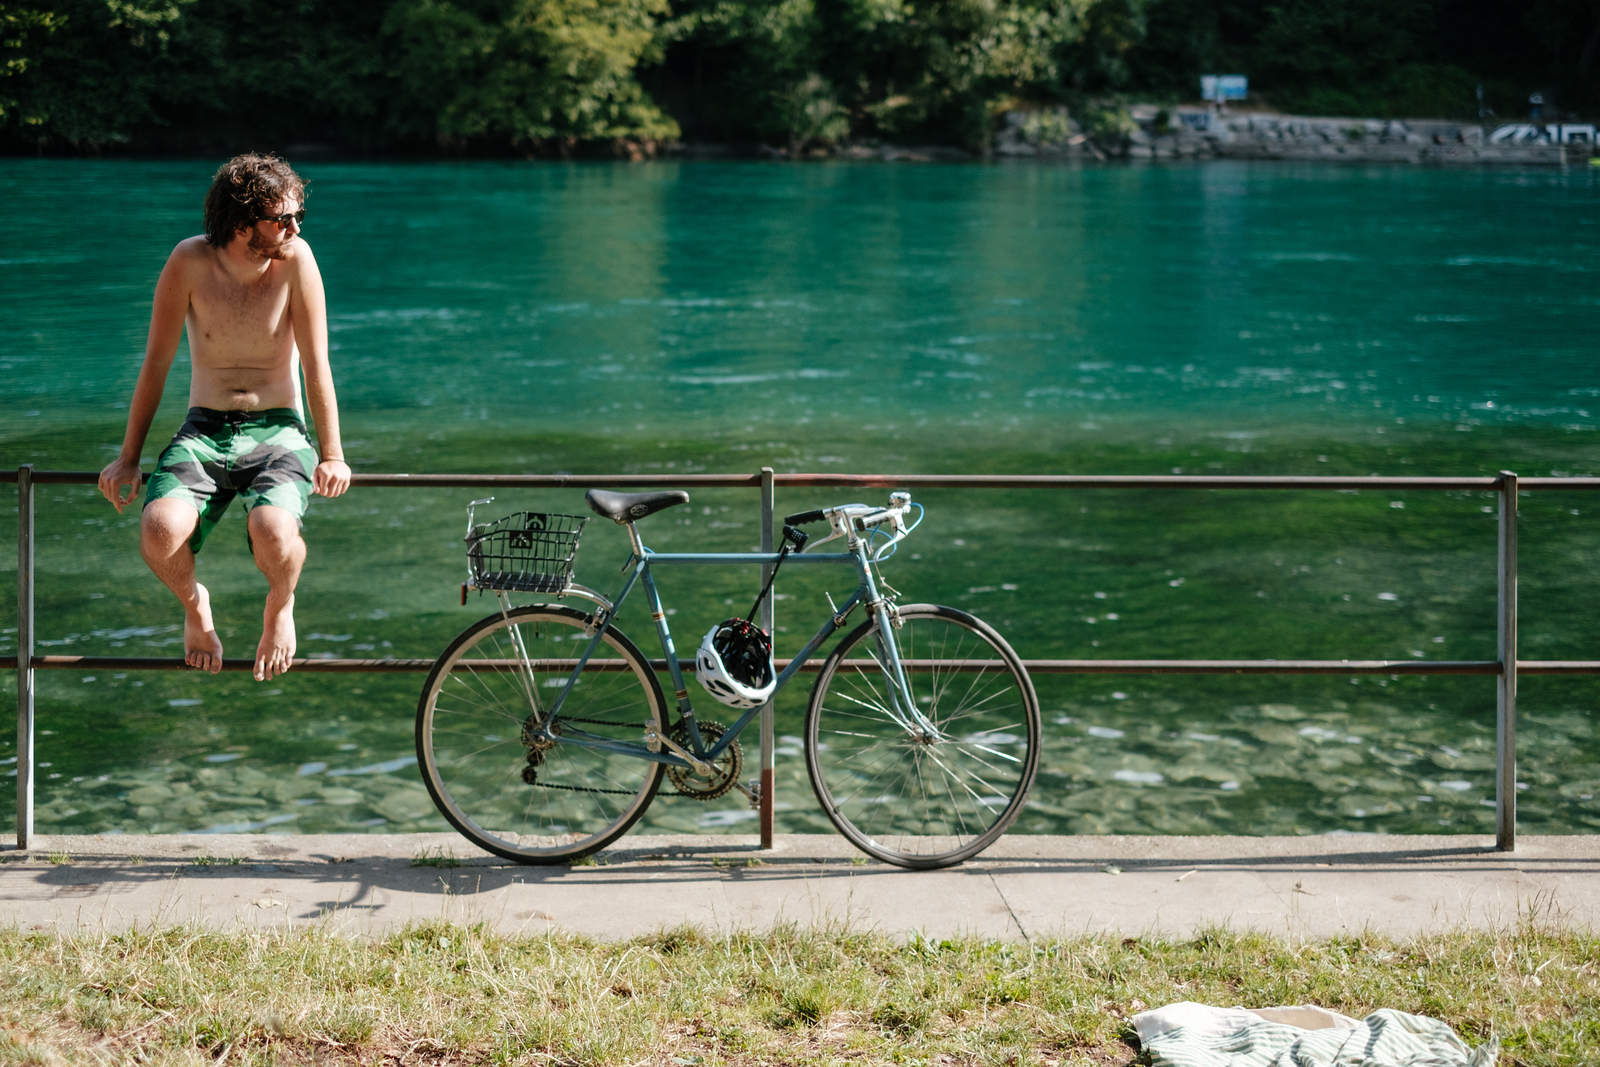 A guy enjoying the summer at the pointe de la jonction Geneva